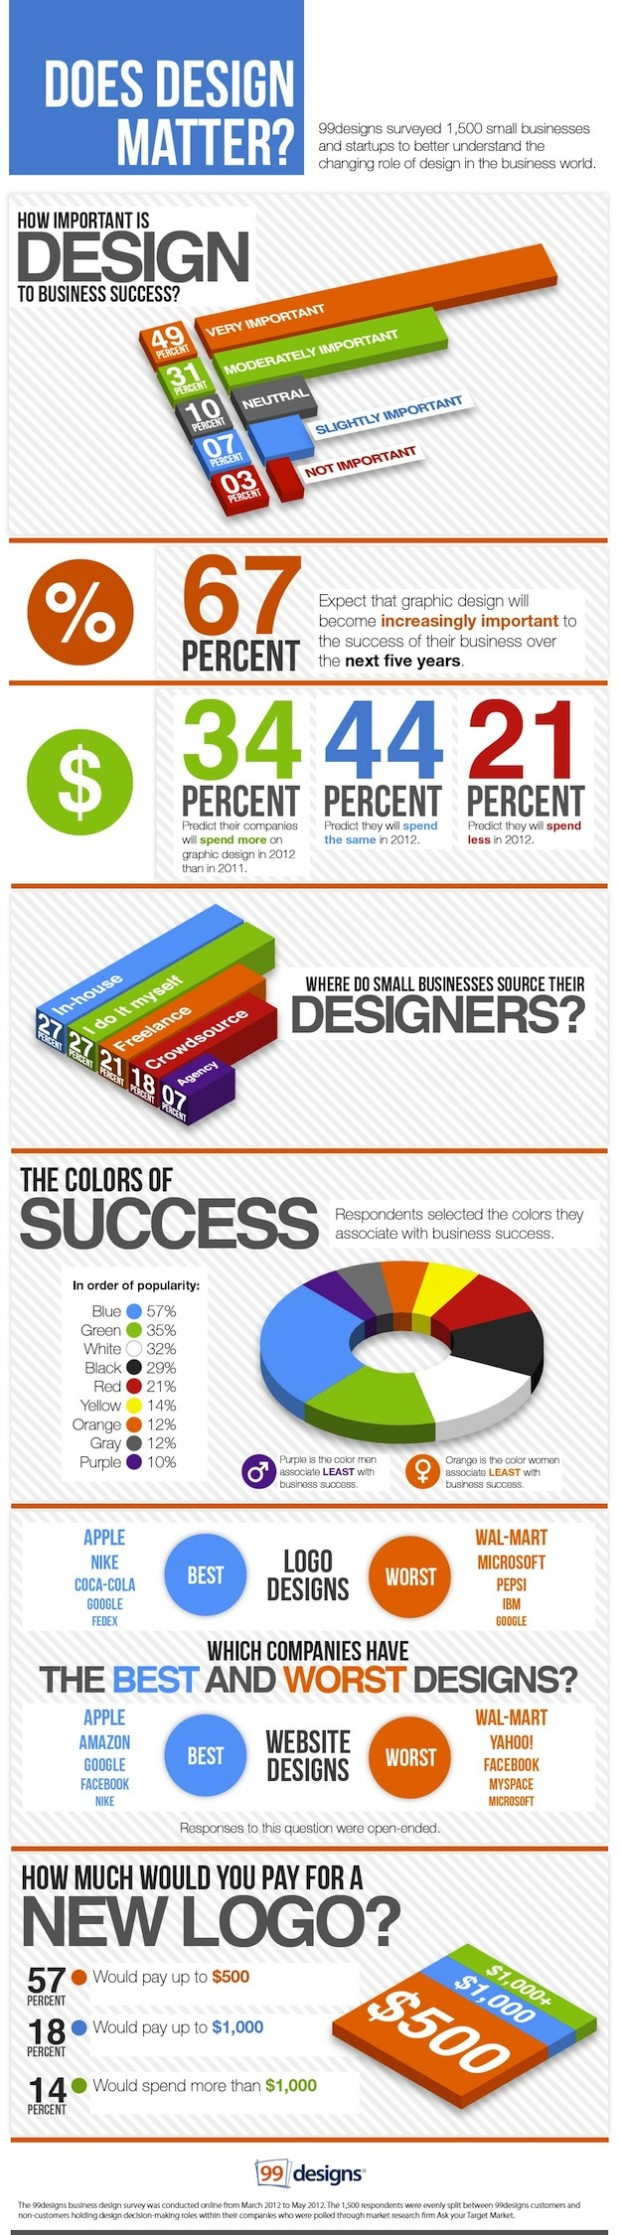 Does-Design-Matter-Infographic-wallpaper-wp5006846